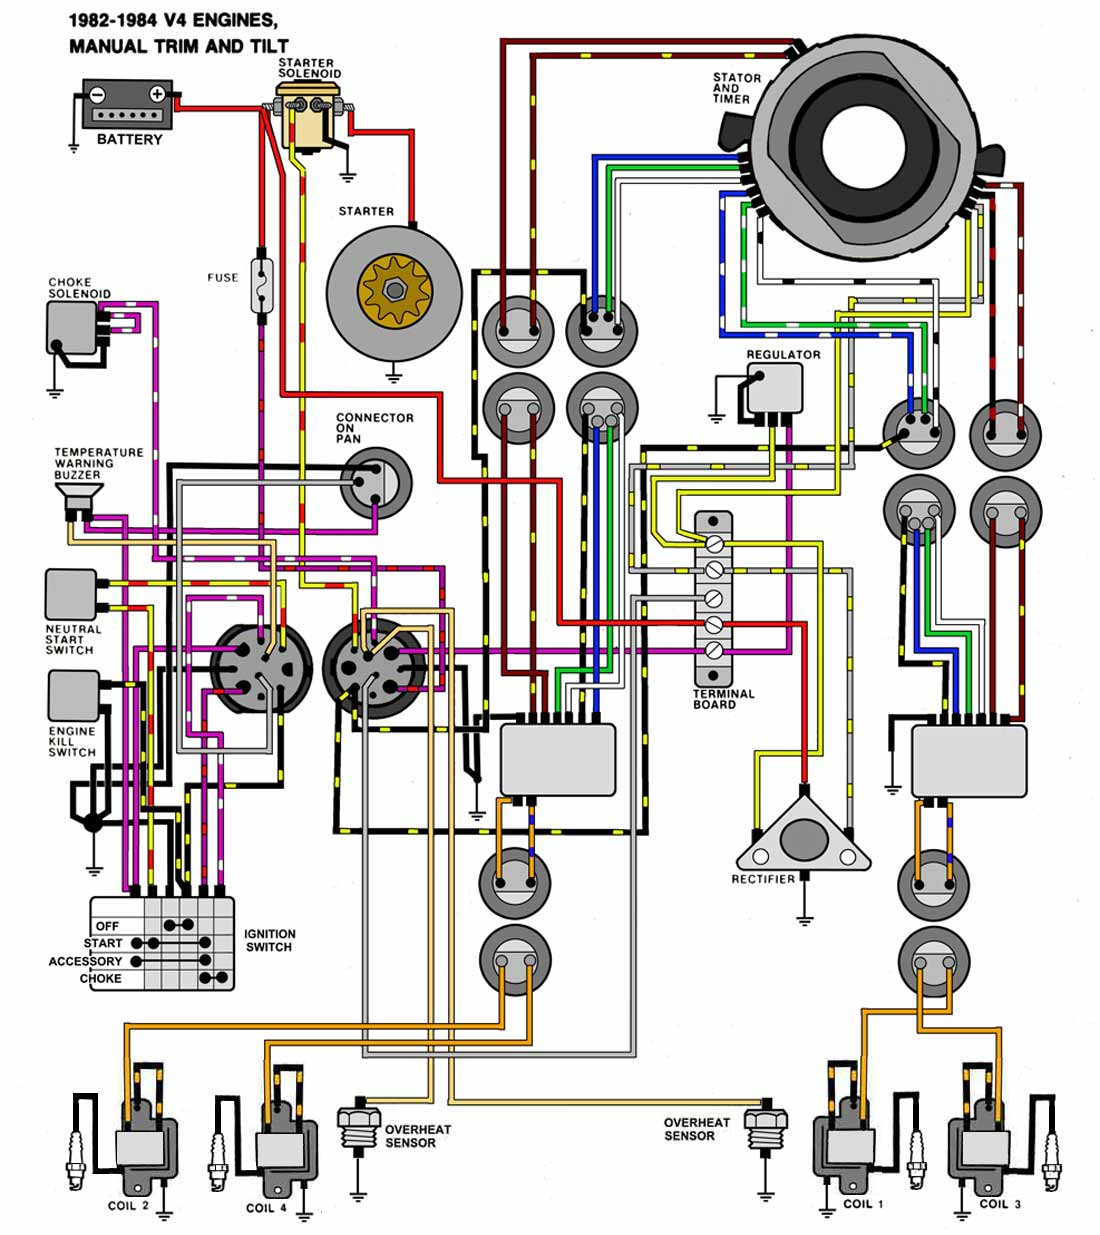 82_84_V4_NOTNT mastertech marine evinrude johnson outboard wiring diagrams Ford 3 Wire Alternator Diagram at soozxer.org